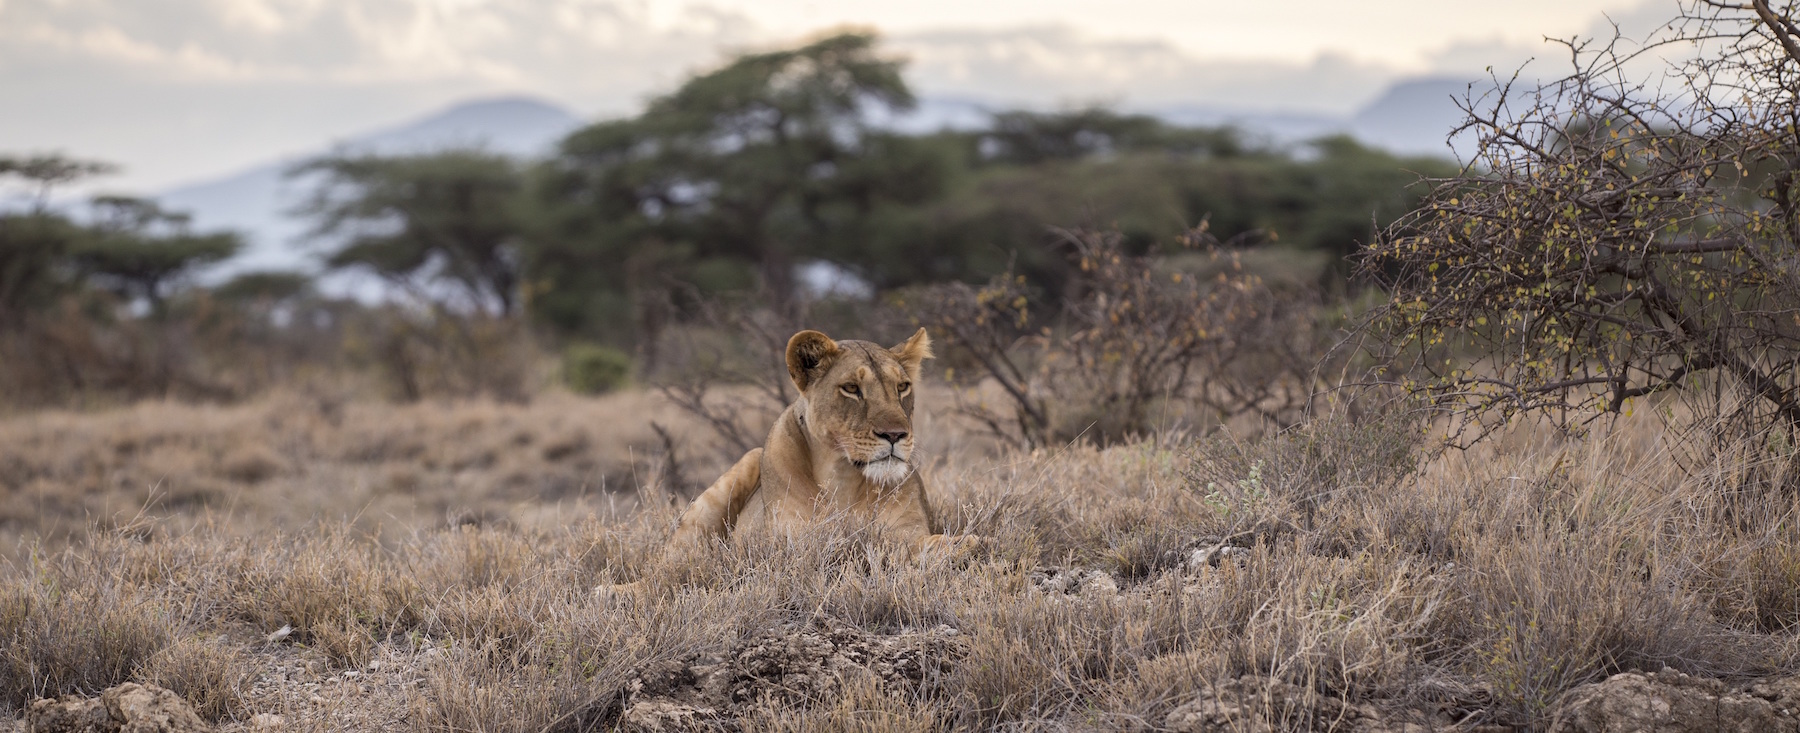 Lion hunts for prey on the savannah